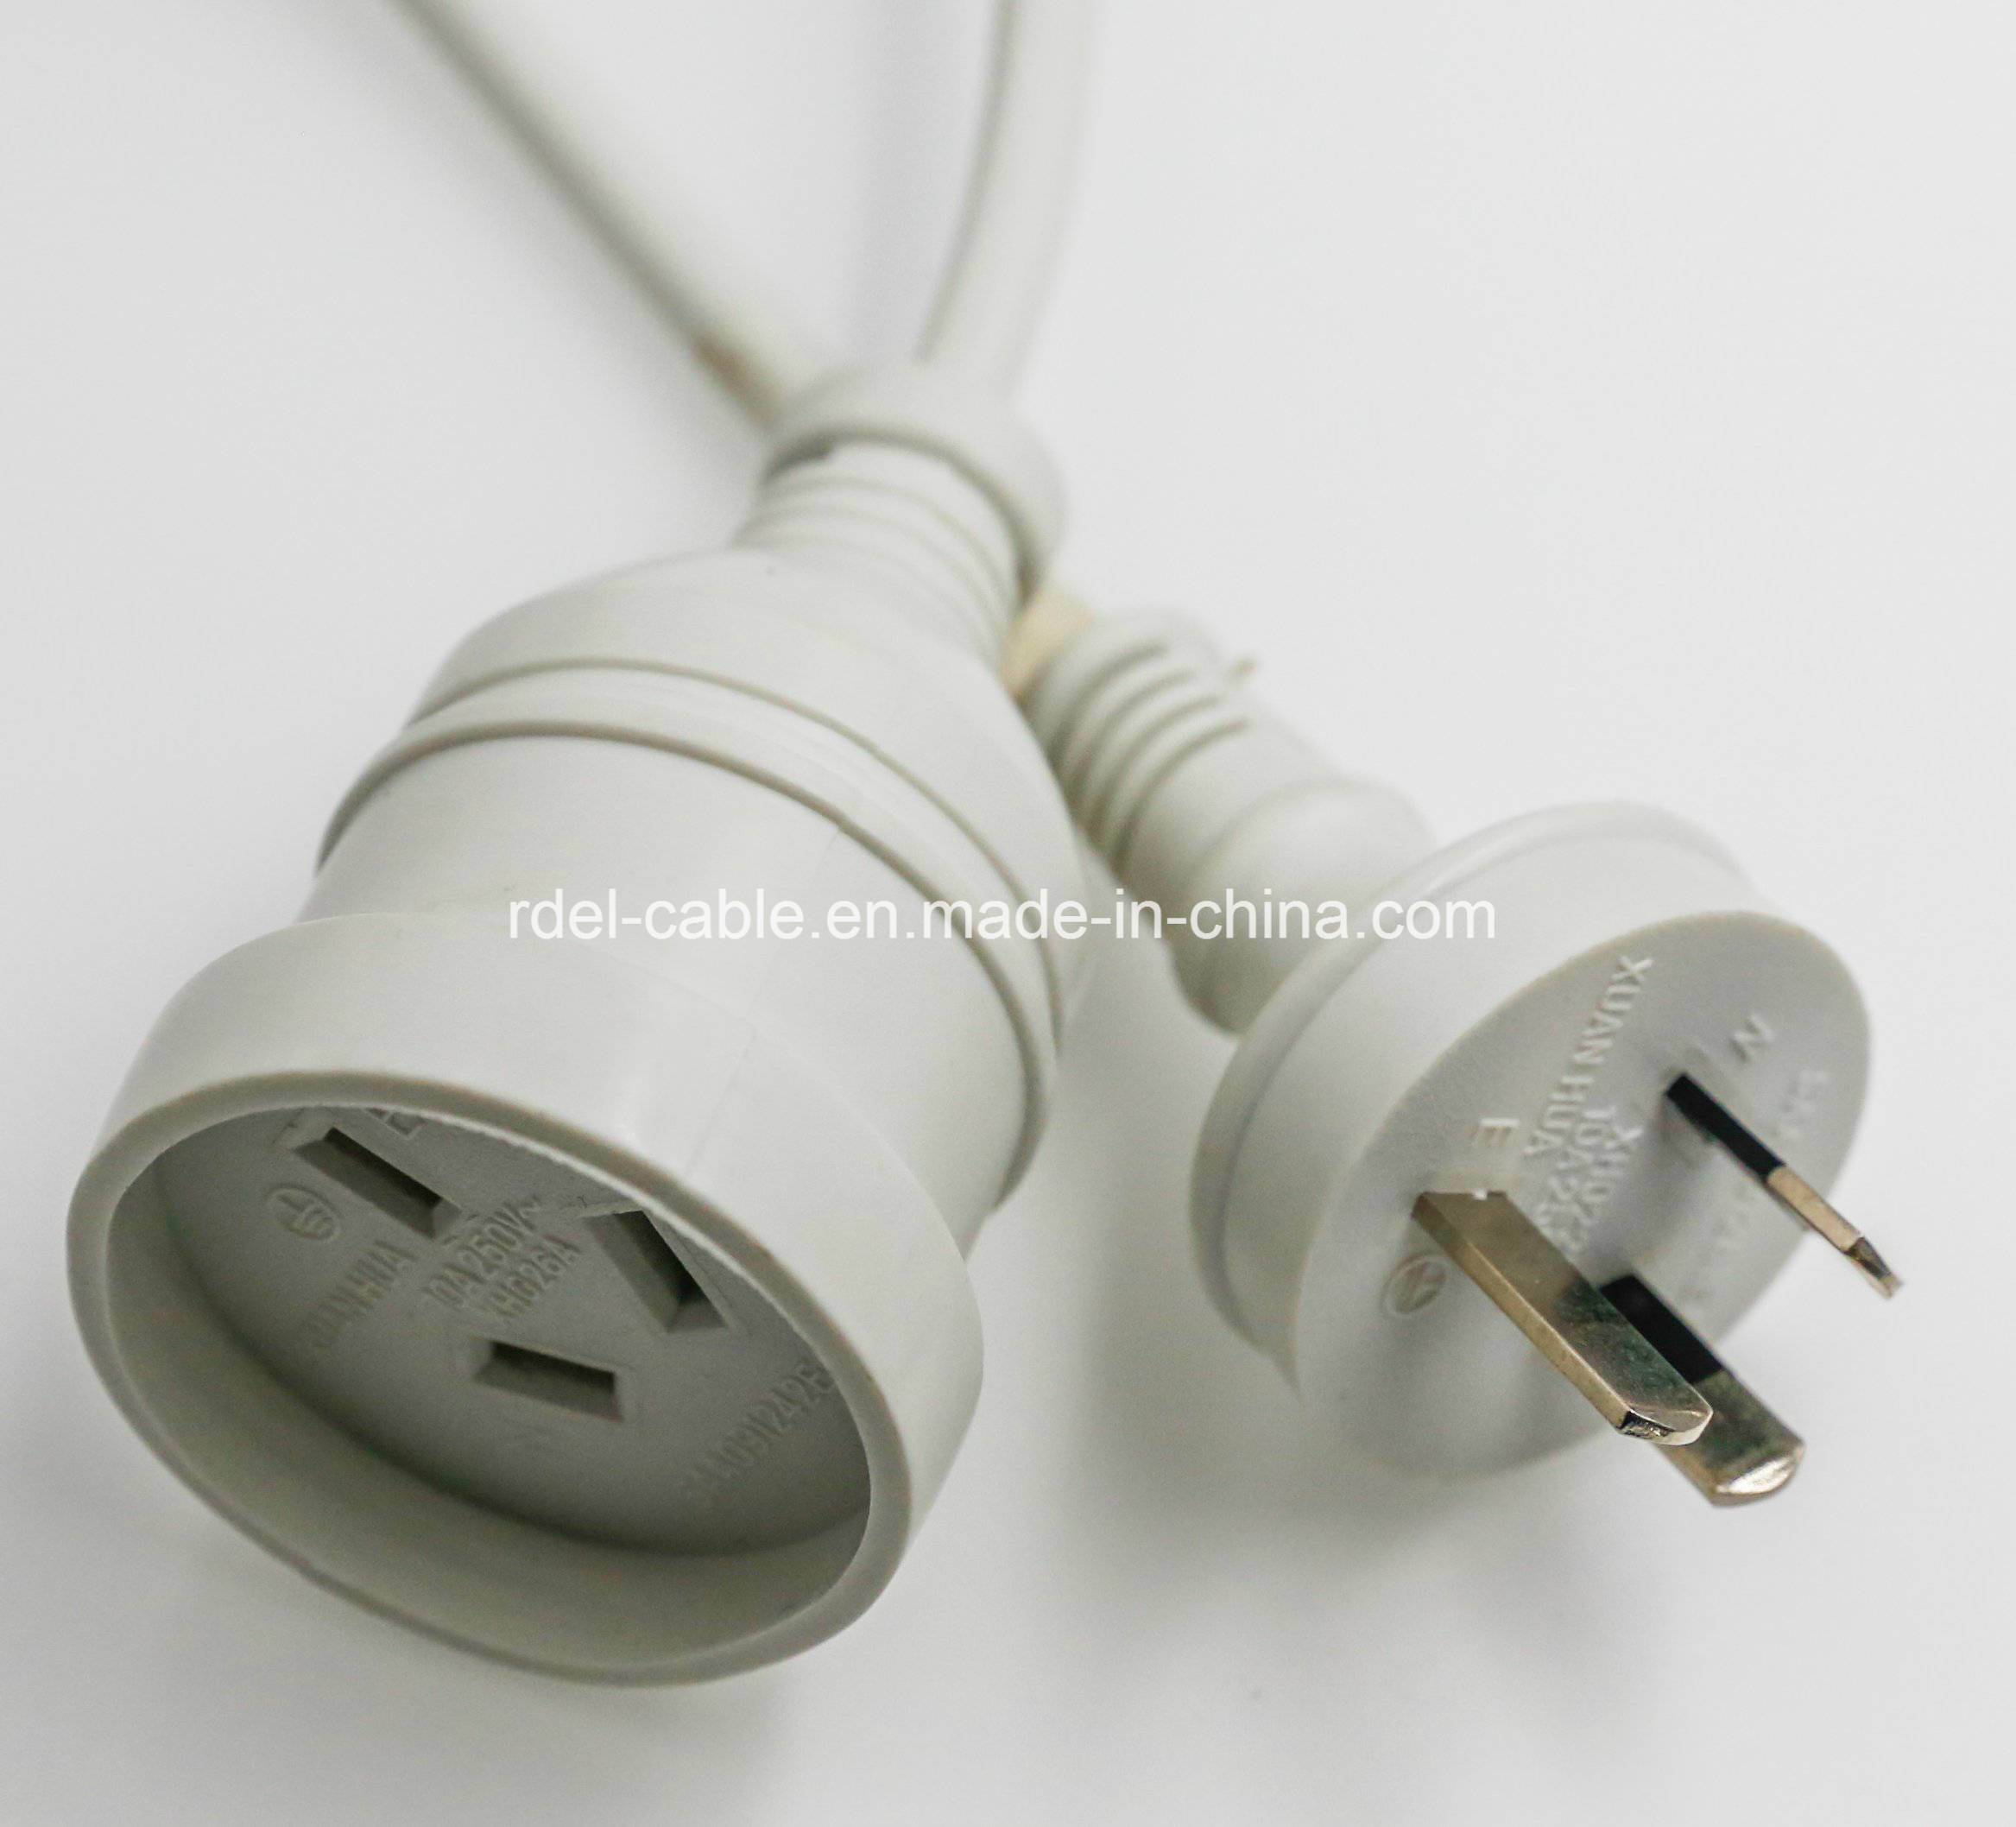 China Saa Extension Lead Australia Australian Power Cord Standard Salt Lamp Po Approved